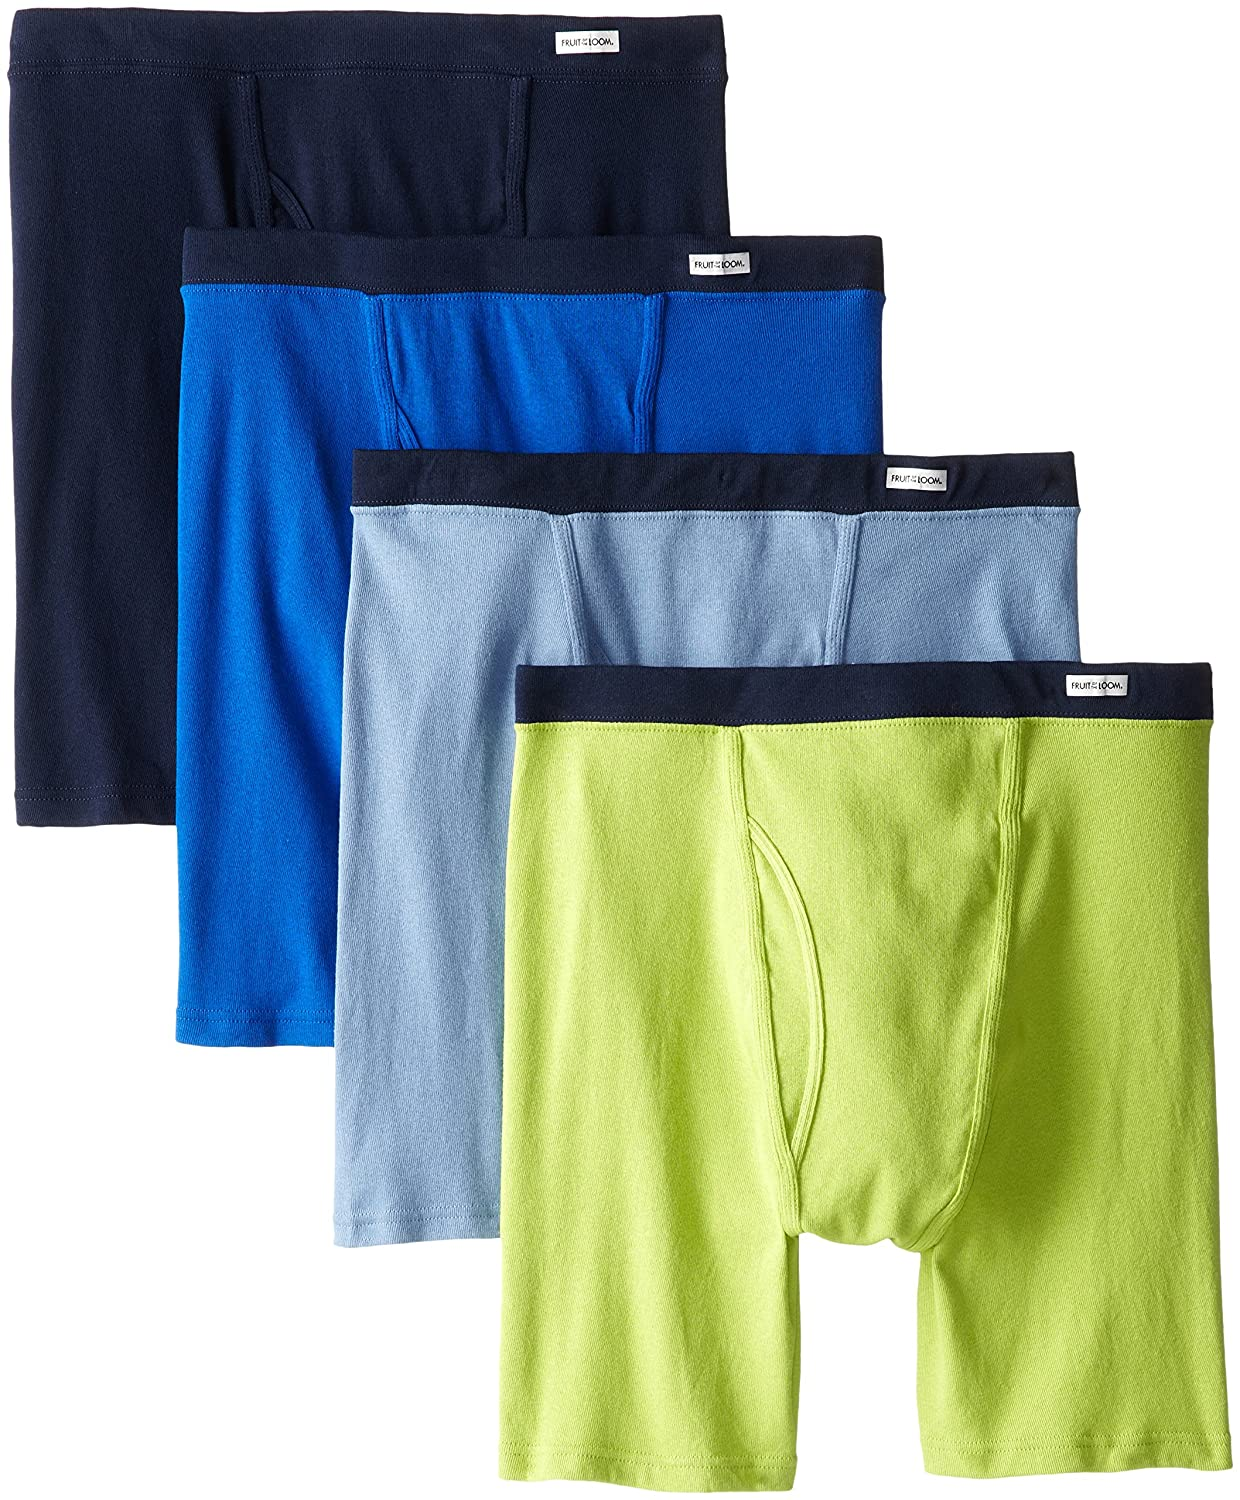 Fruit of the Loom Men's Covered Waistband Boxer Briefs(Pack of 4) 4CBB01X